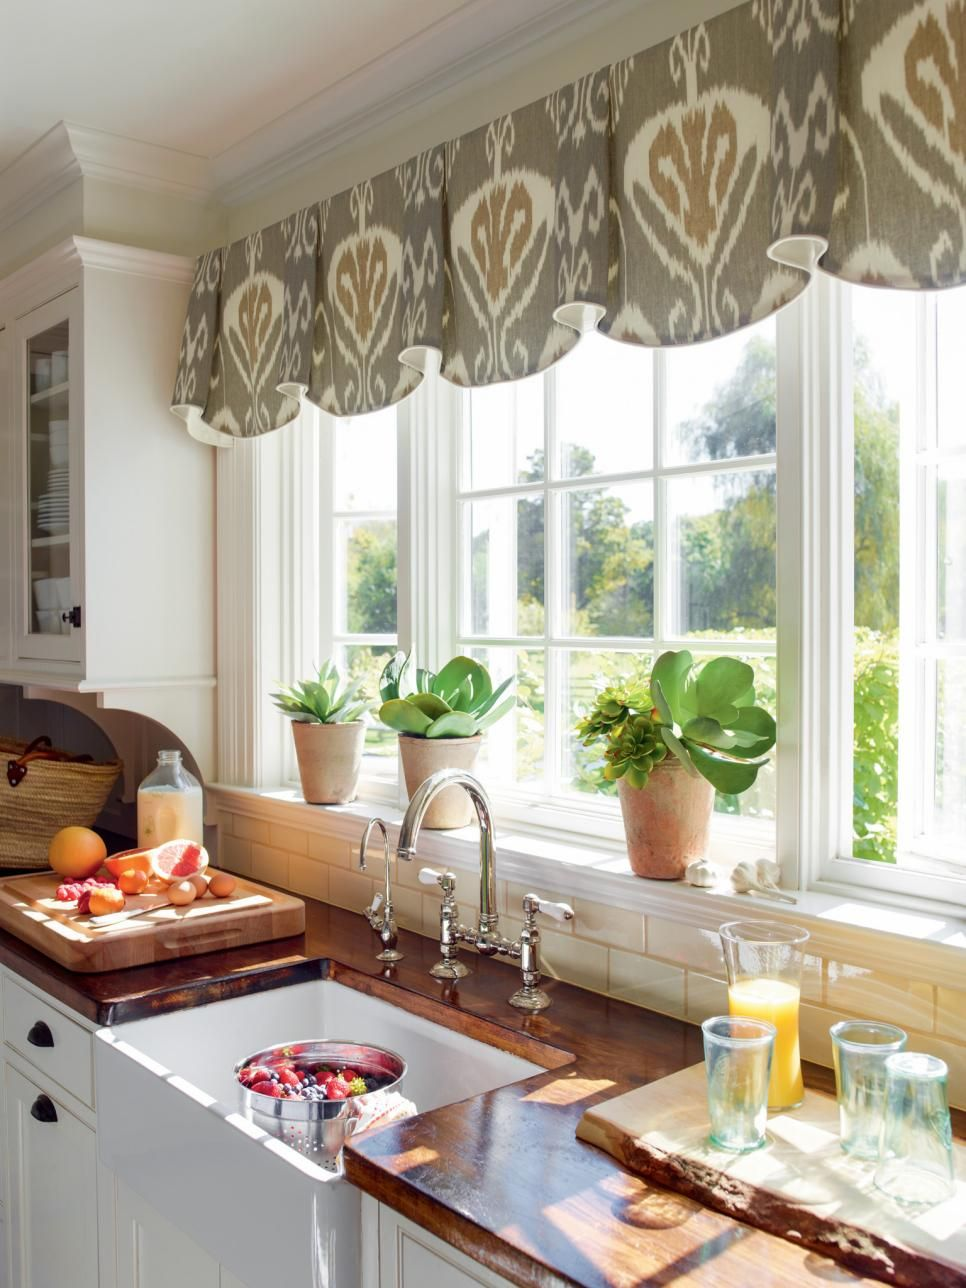 How To Decorate Kitchen Windows Designalls In 2020 Kitchen